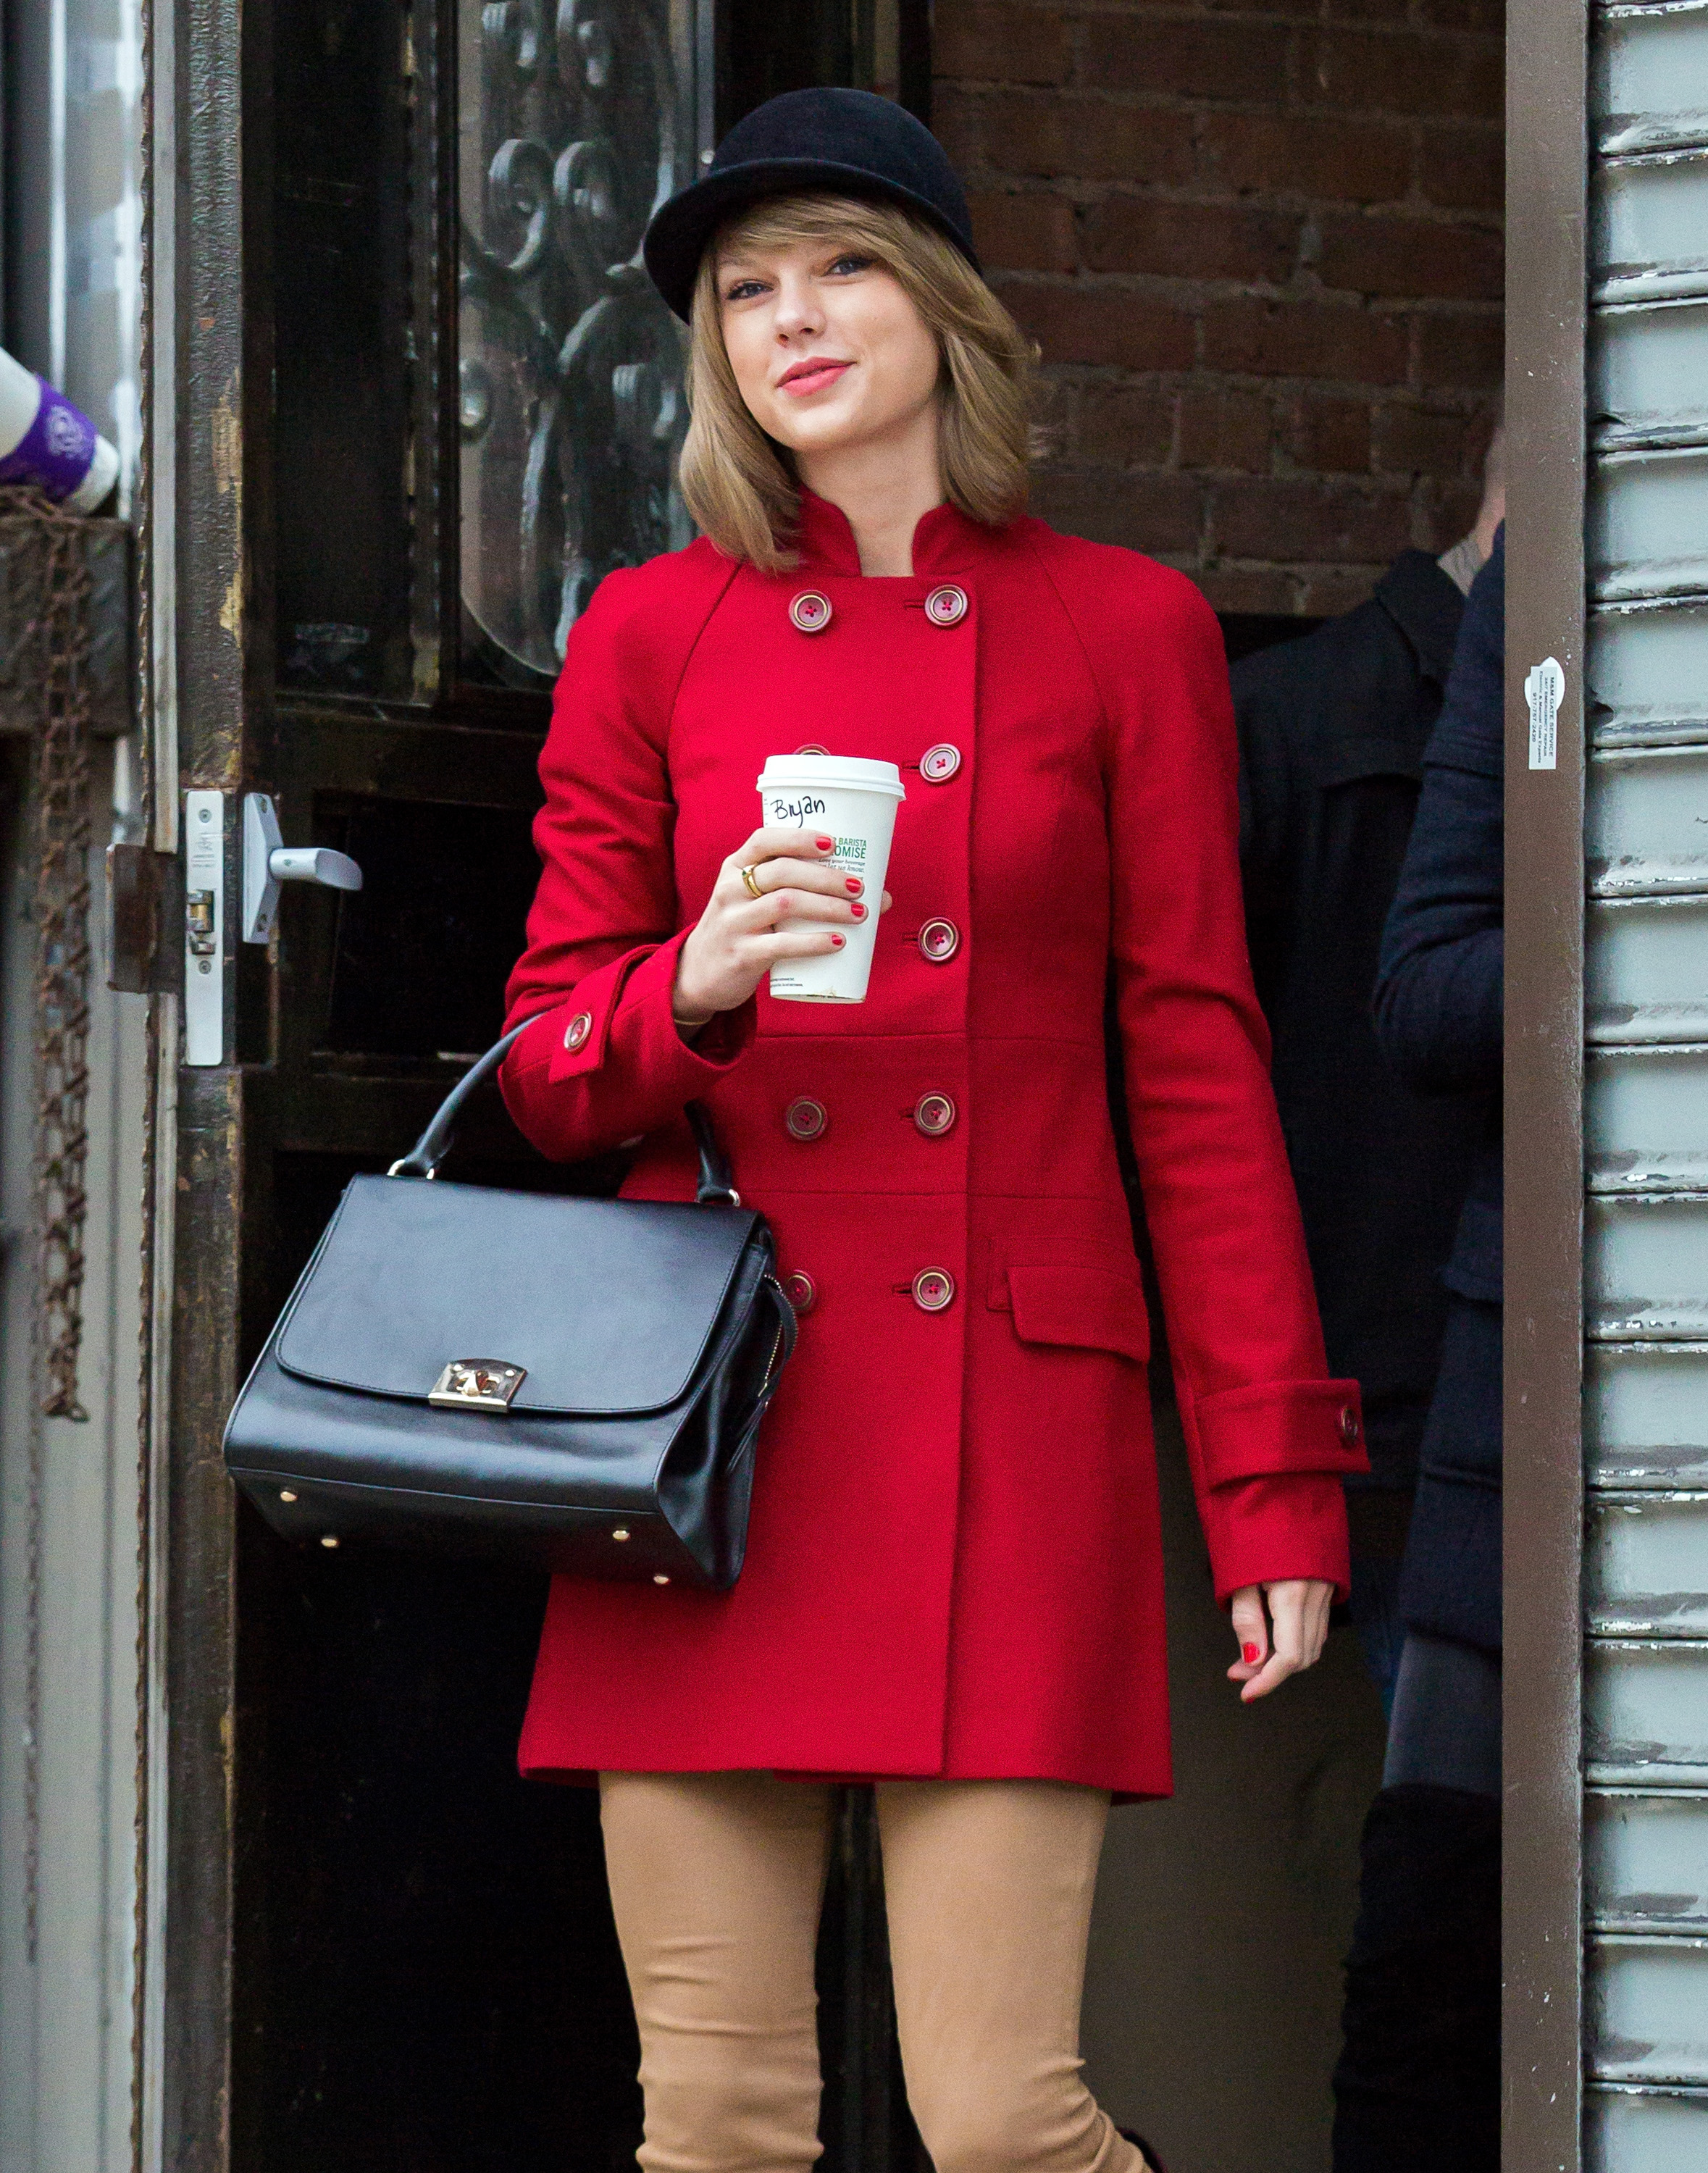 Taylor Swift in TriBeCa on Jan. 17, 2015 in New York City.